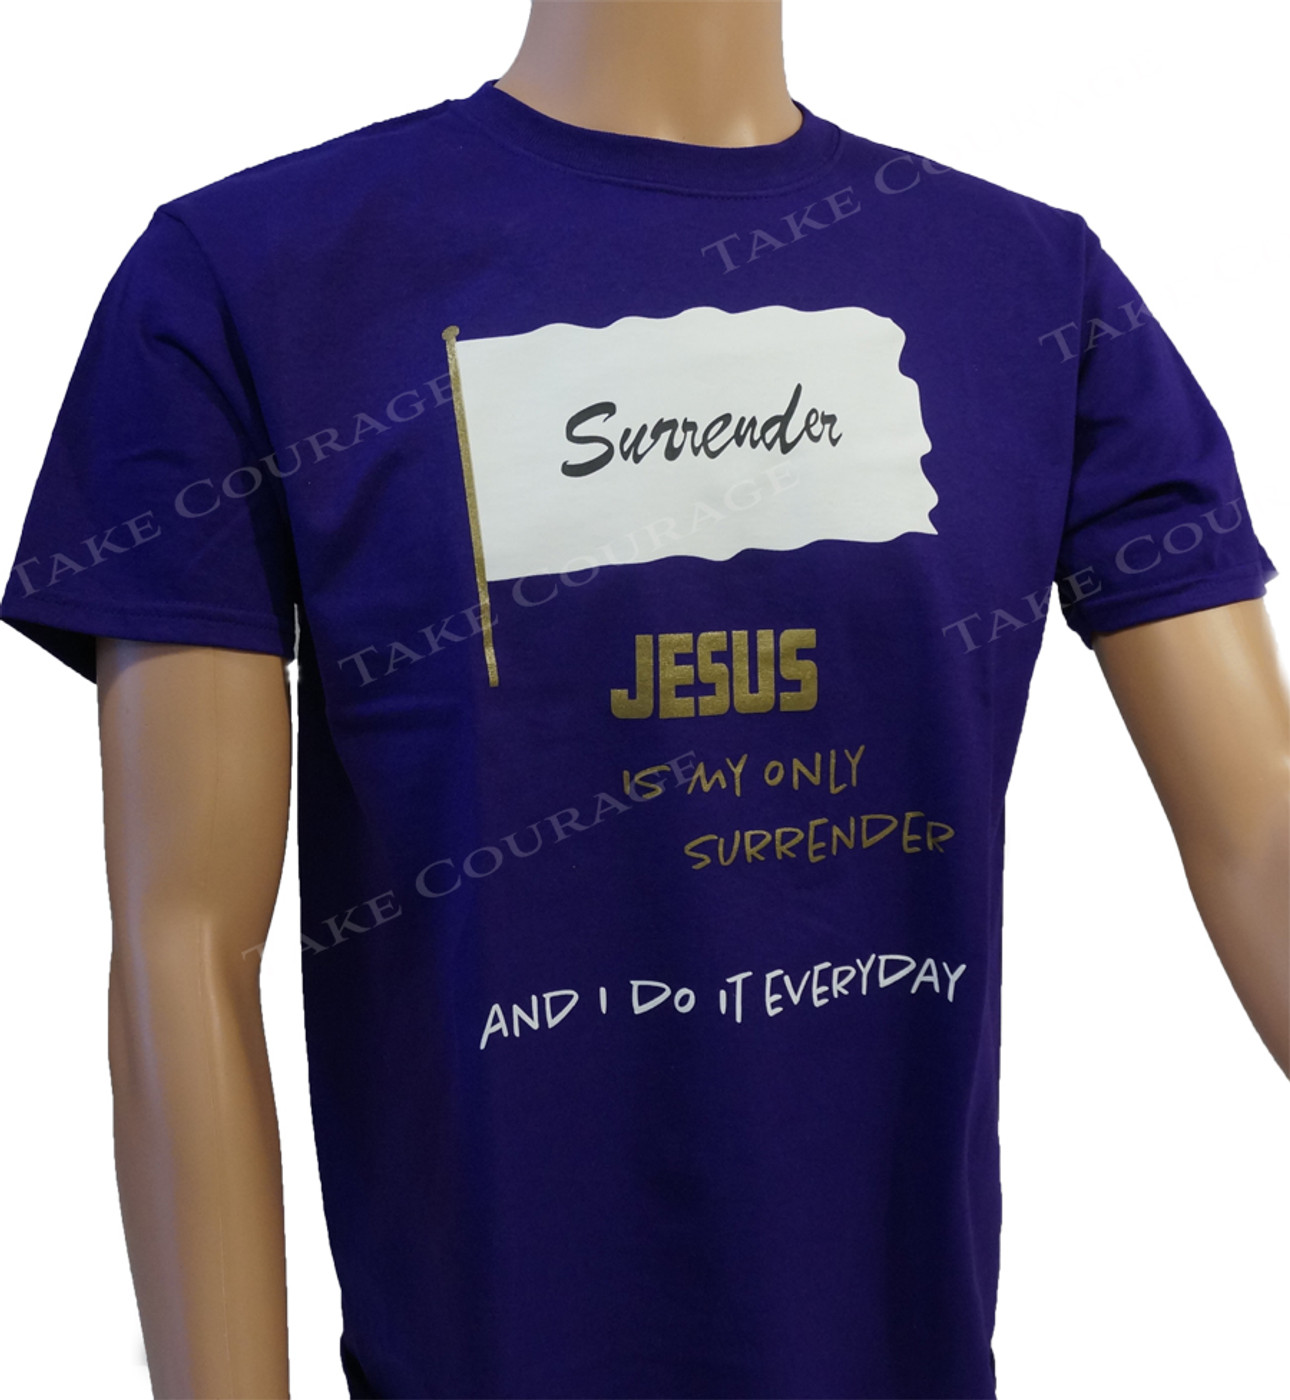 Surrender - Christian Shirt - Purple&Gold